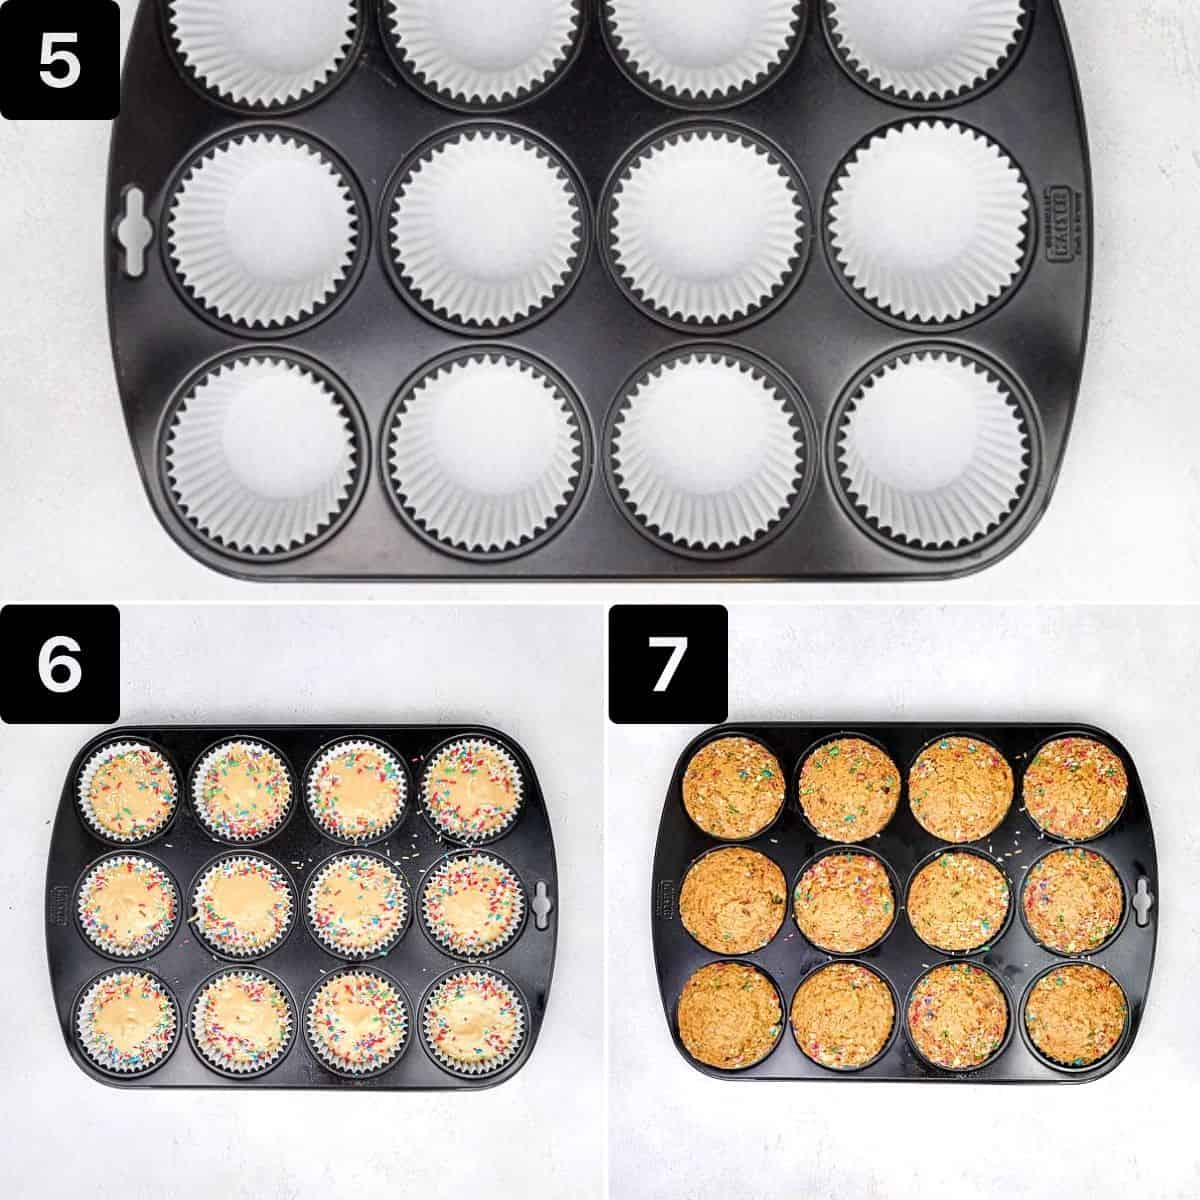 muffin pan lined with white muffin liners, liners filled with batter, muffin pan with baked muffins